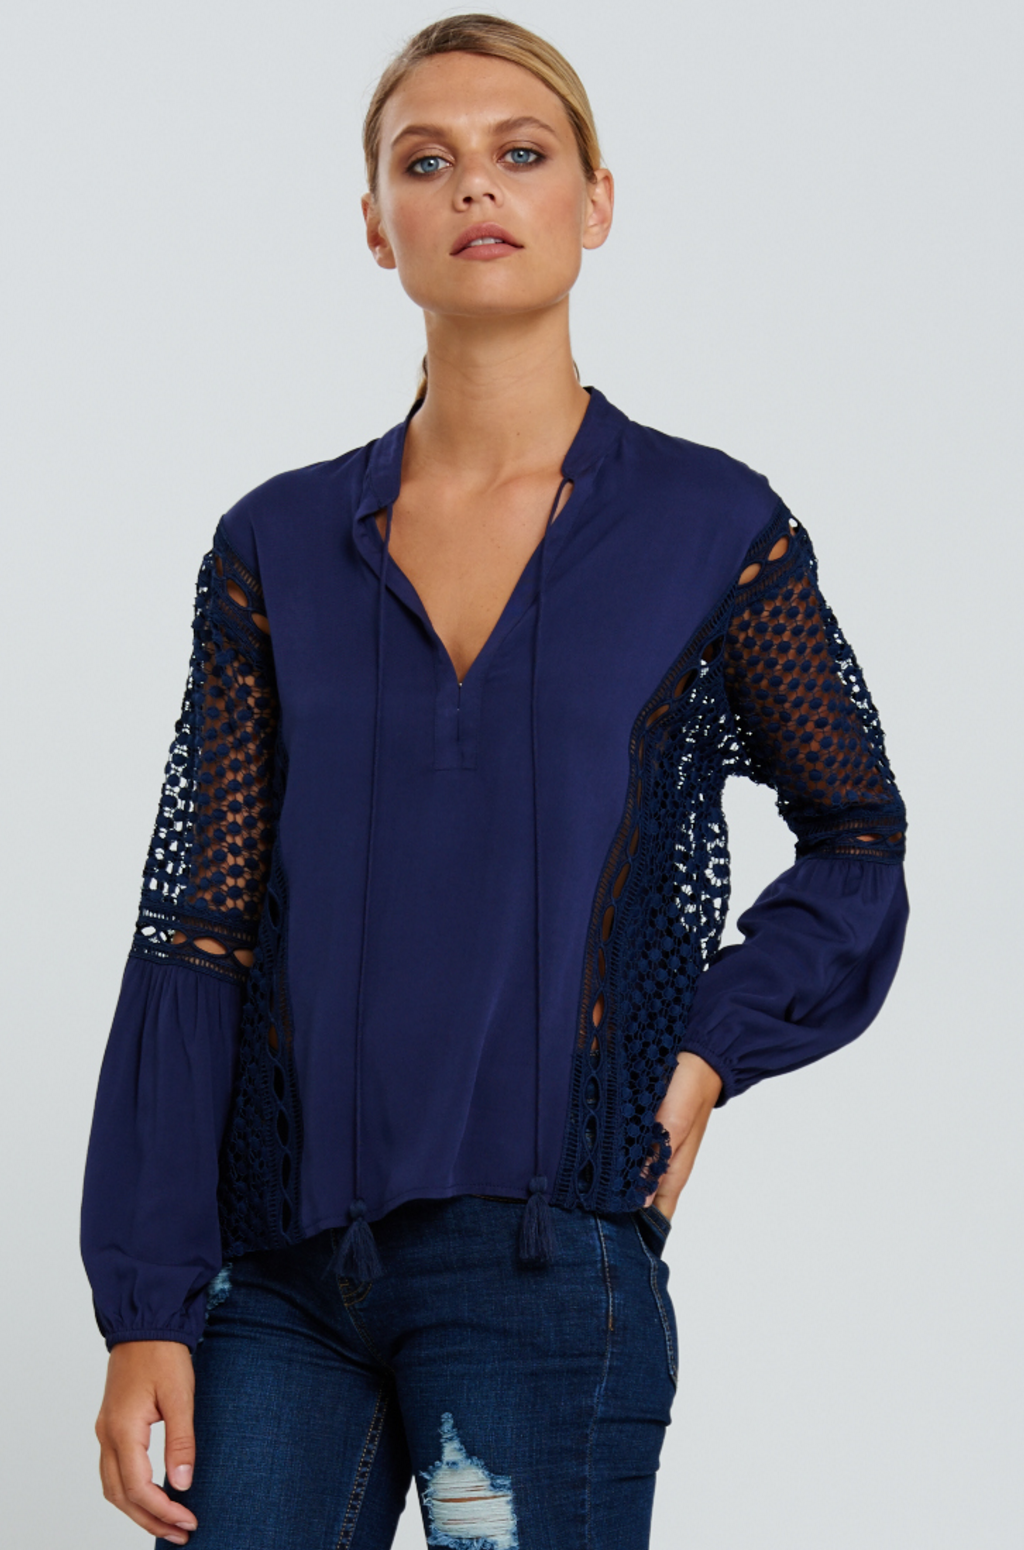 Bohemian Traders navy tulip blouse $159